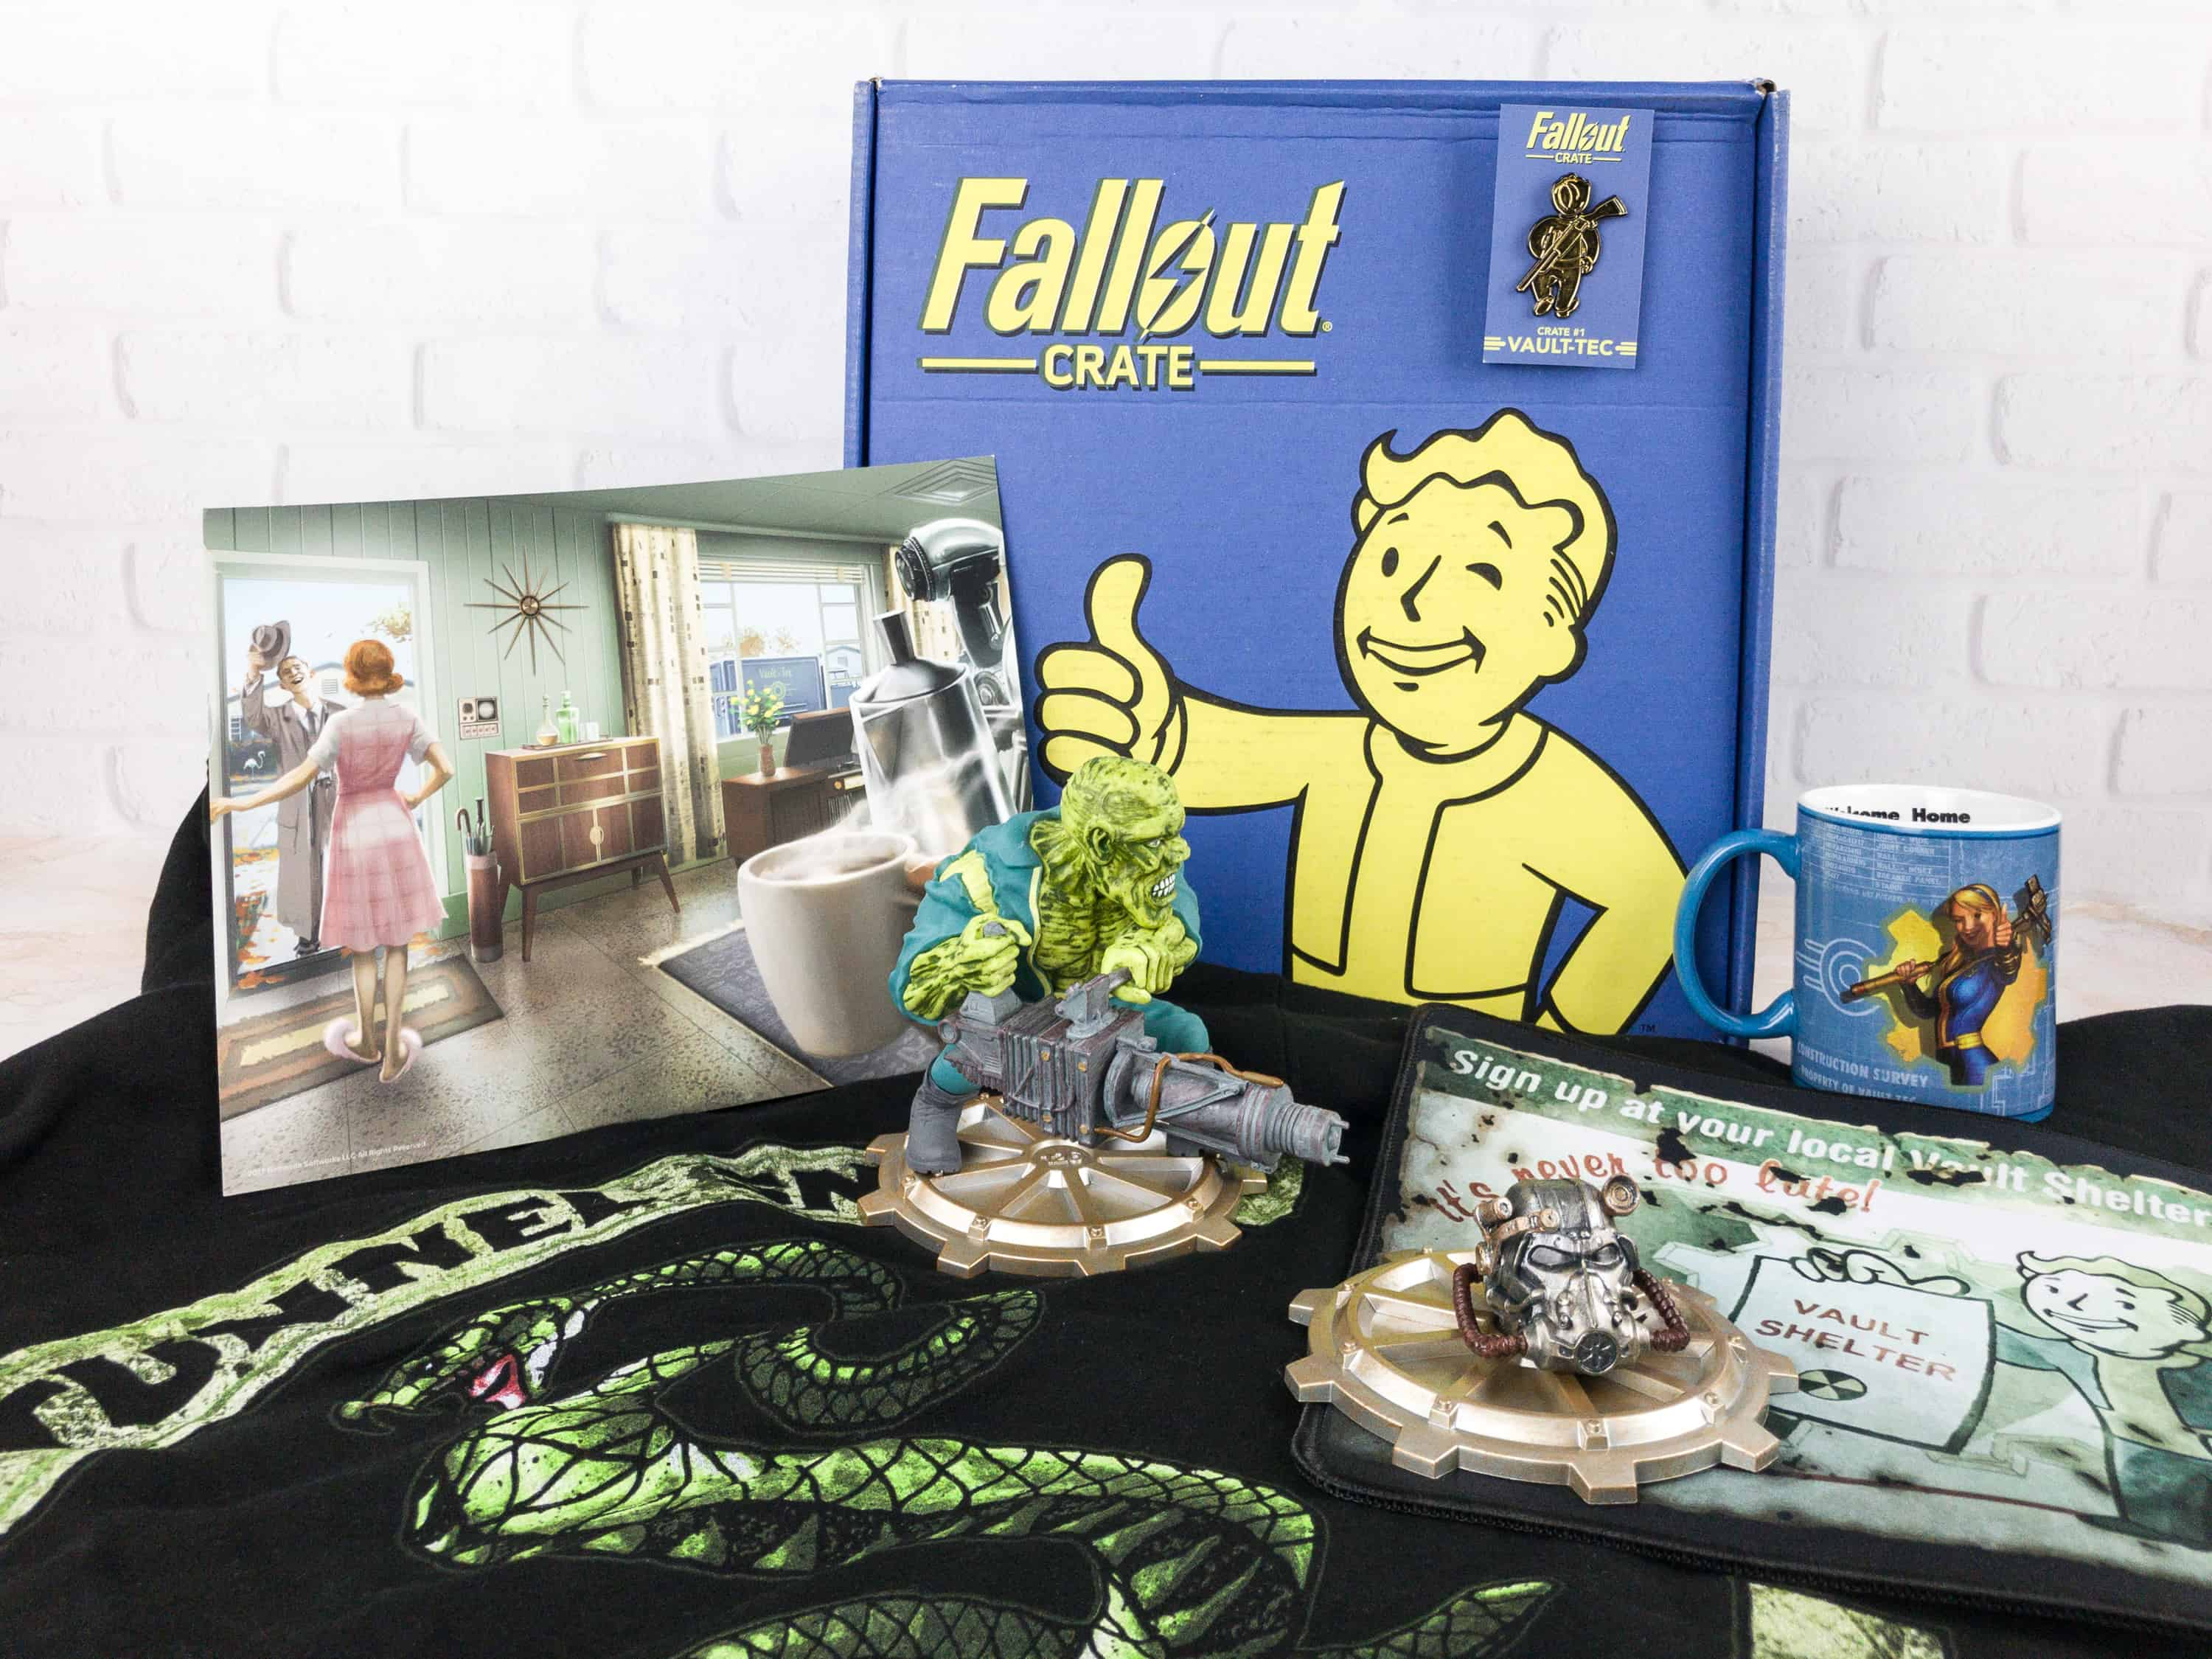 Loot Crate Fallout Crate December 2017 Review Coupon